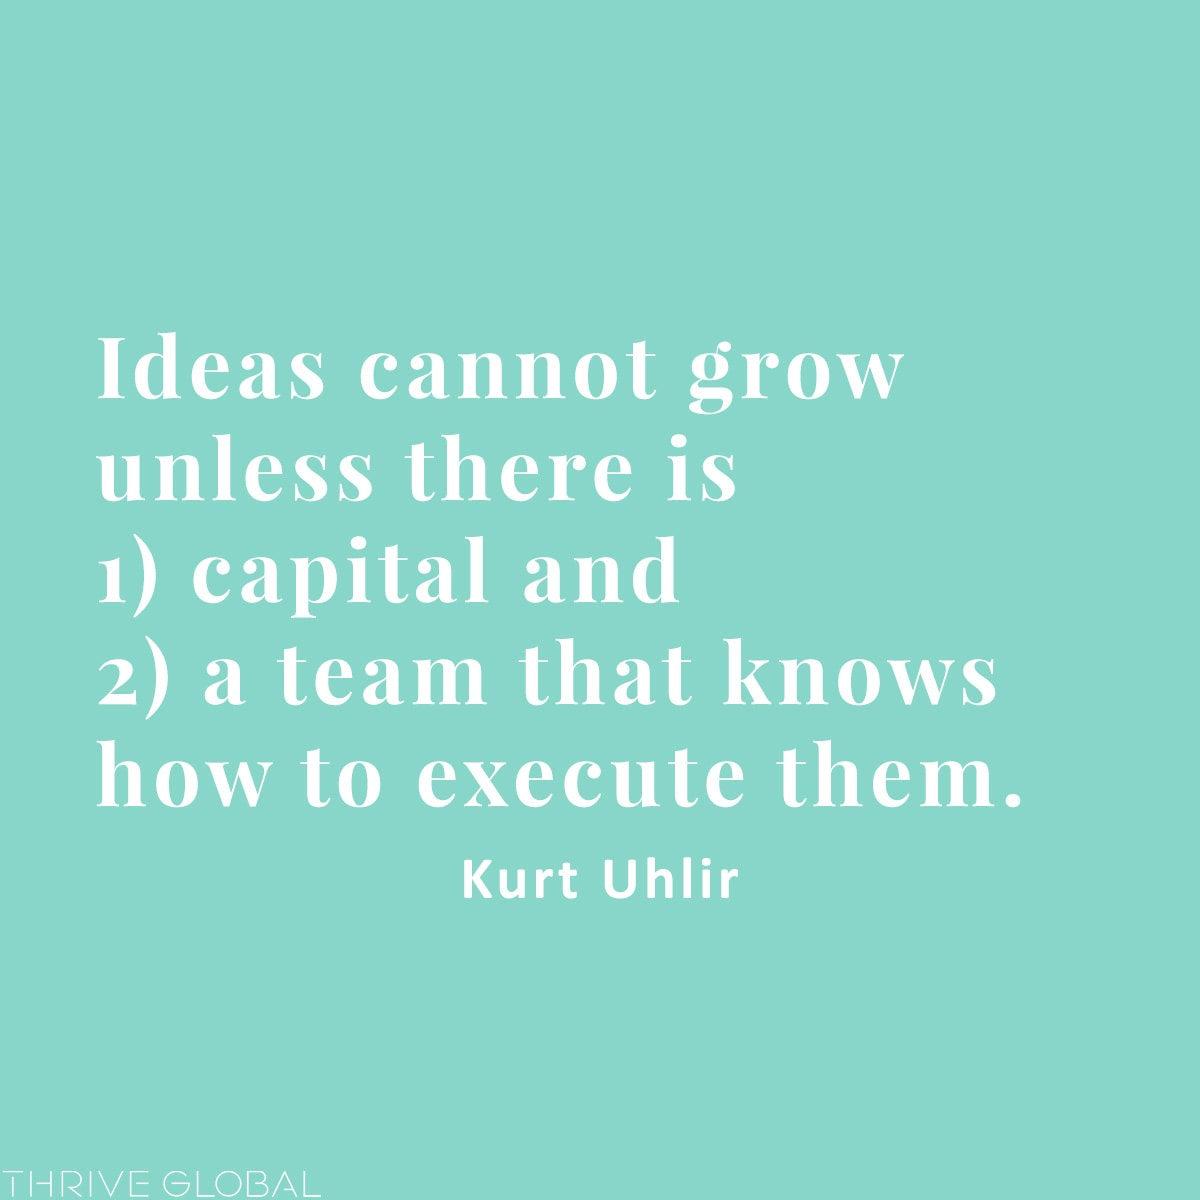 Ideas cannot grow unless there is 1) capital and 2) a team that knows how to execute them.